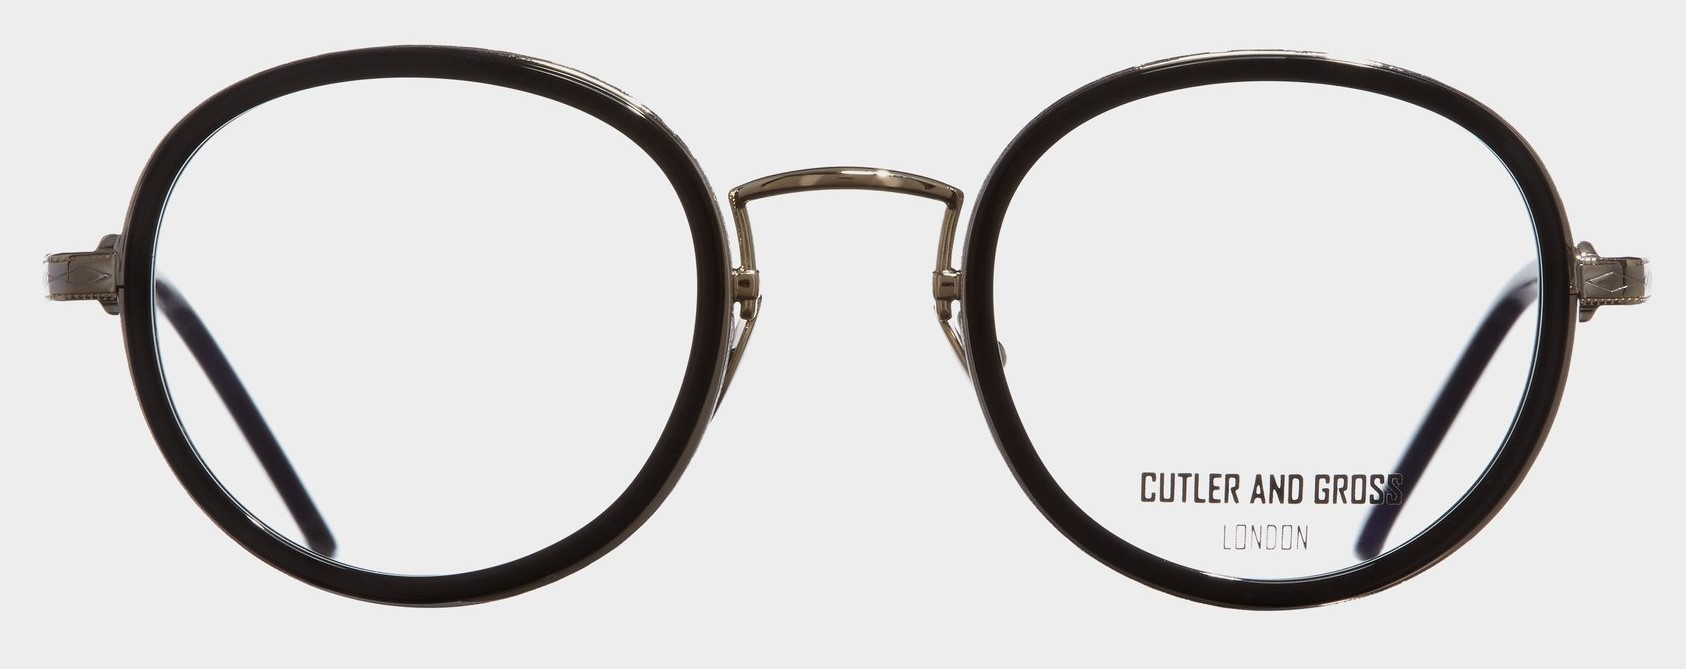 cutler and gross glasses